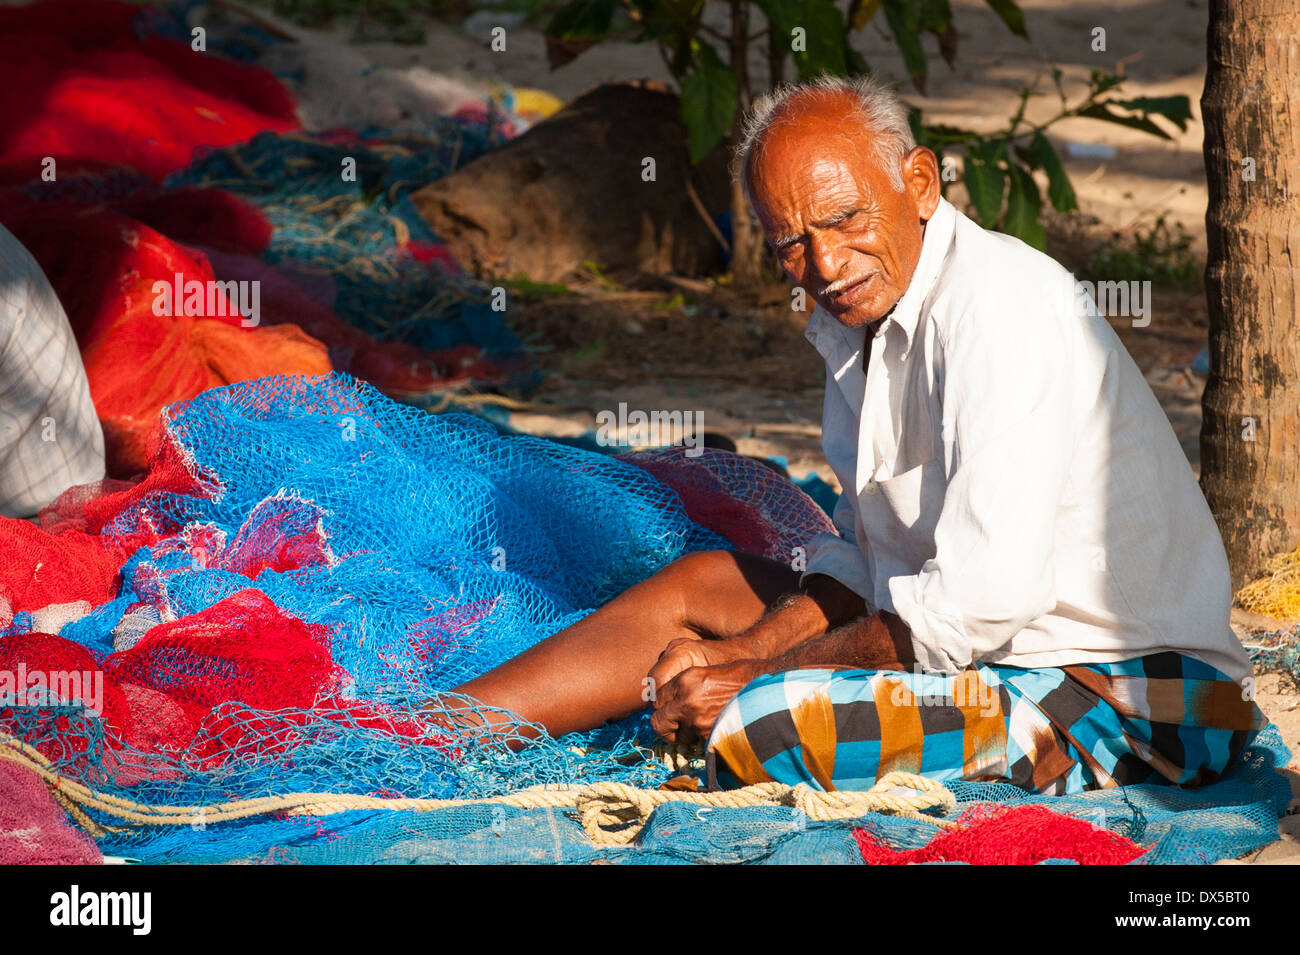 South Southern India Kerala Alleppy Mararikulam beach fisherman 0ld man male repairing mending net nets shore sand scene scenery - Stock Image